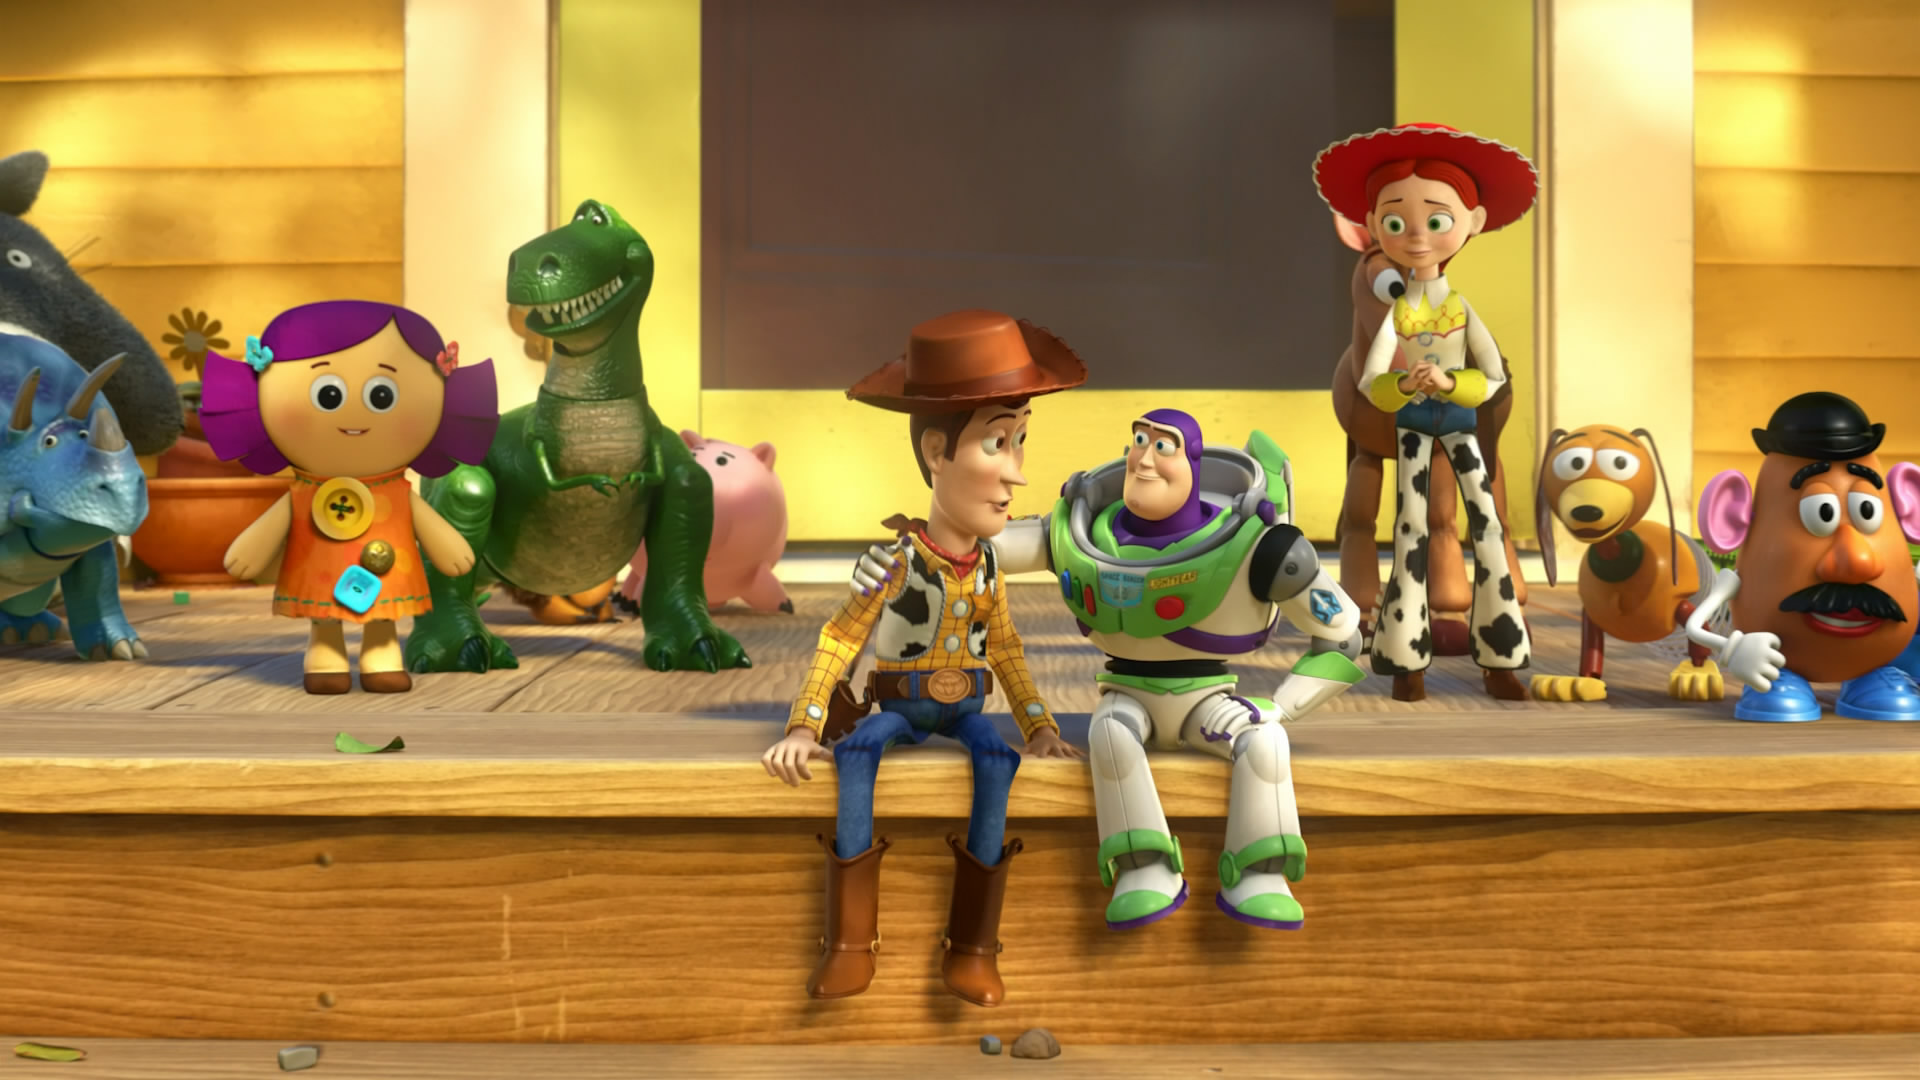 Toy story 3 details launchbox games database for Toy story 5 portada